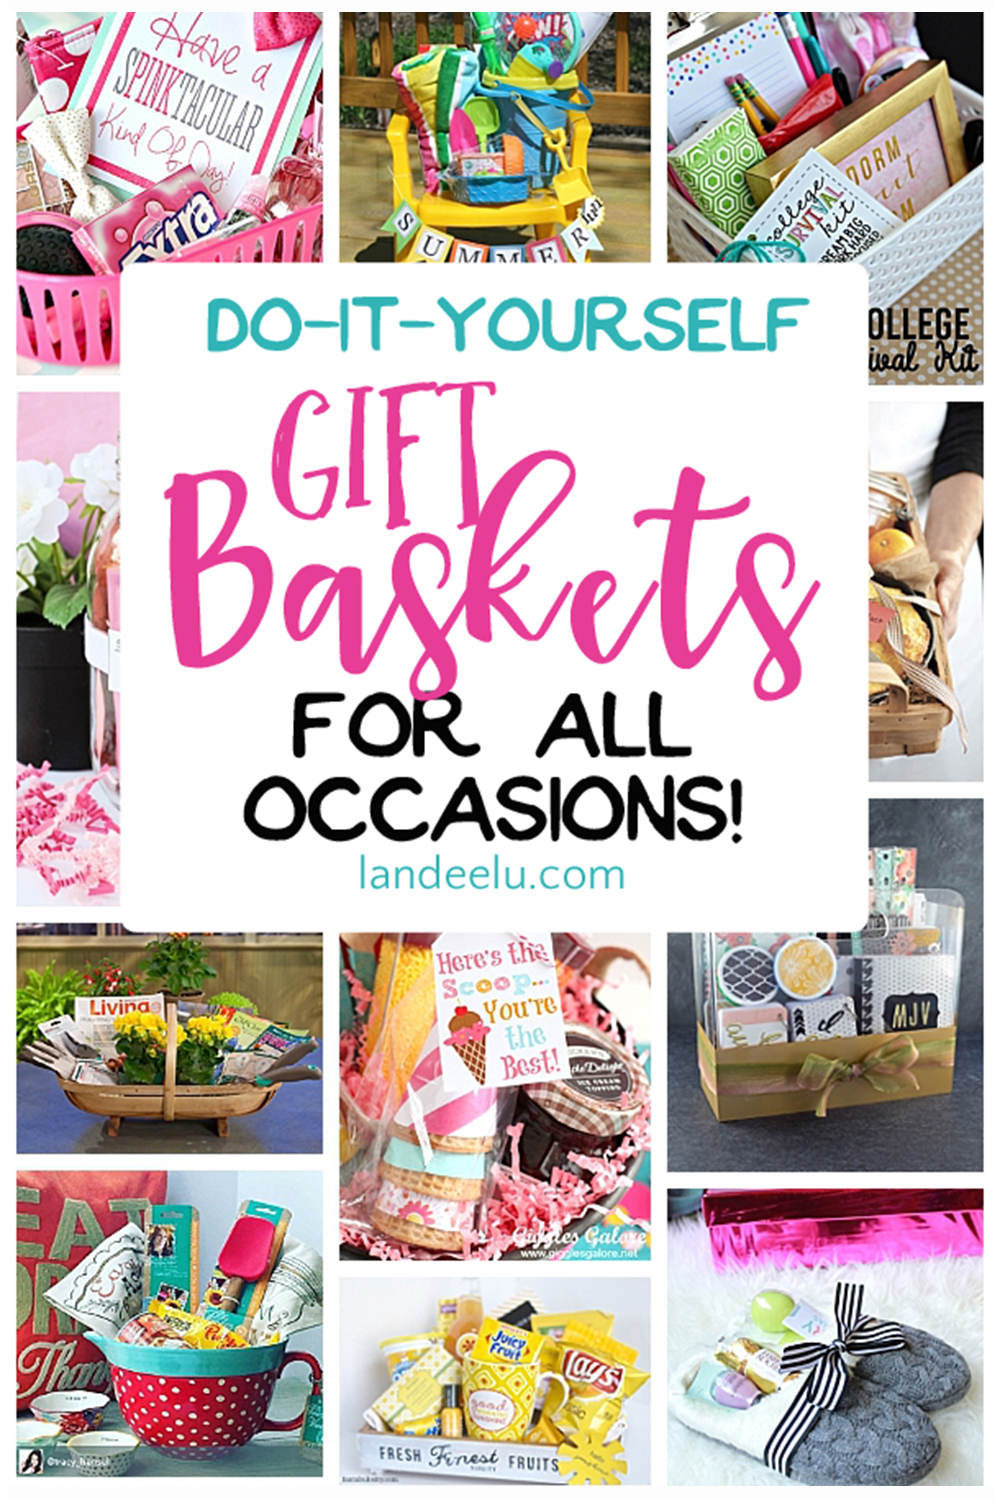 Do It Yourself: Do It Yourself Gift Basket Ideas For All Occasions